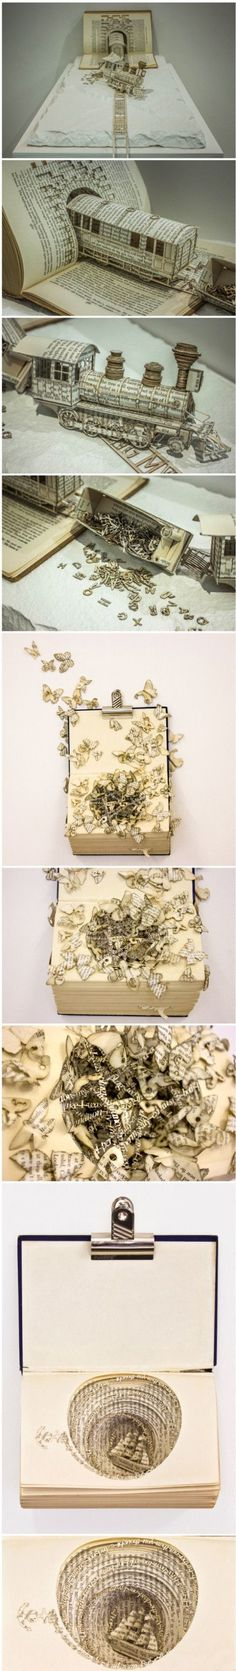 amazing book sculpture.  I don't know who the artist is and I can't seem to find out.  Does anyone know?